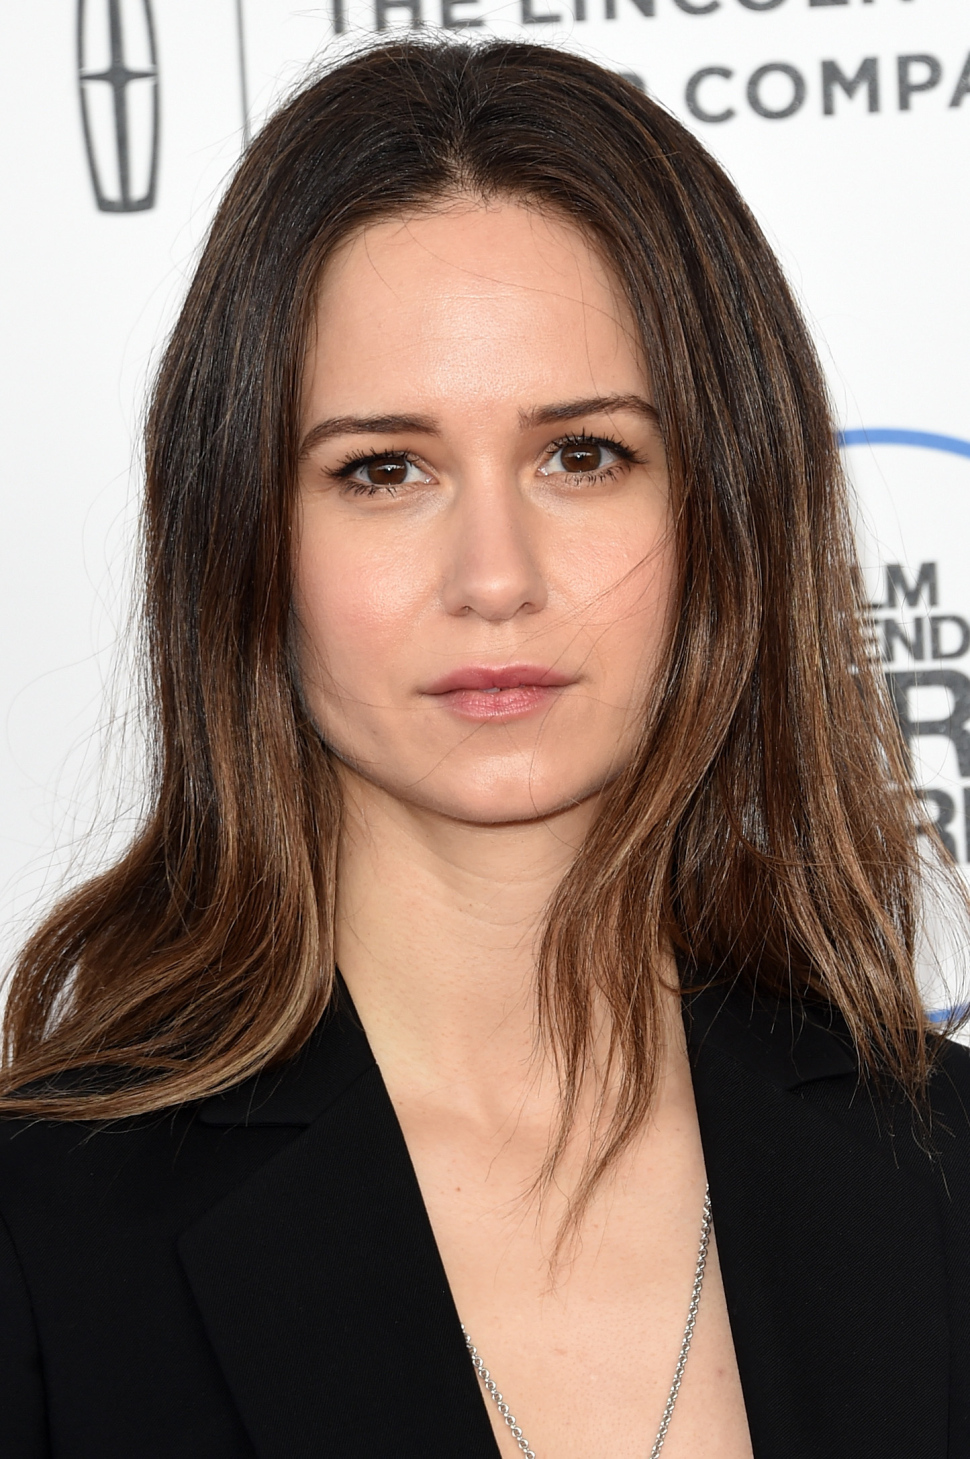 predator drone with Katherine Waterston on Russian Jets Have Been Shadowing Us Predator Drones Over Syria also Puzzlecesitleri further Drone Wars likewise The Future Is Here Predator Drones And Uavs together with A 10 Blueprint Art.